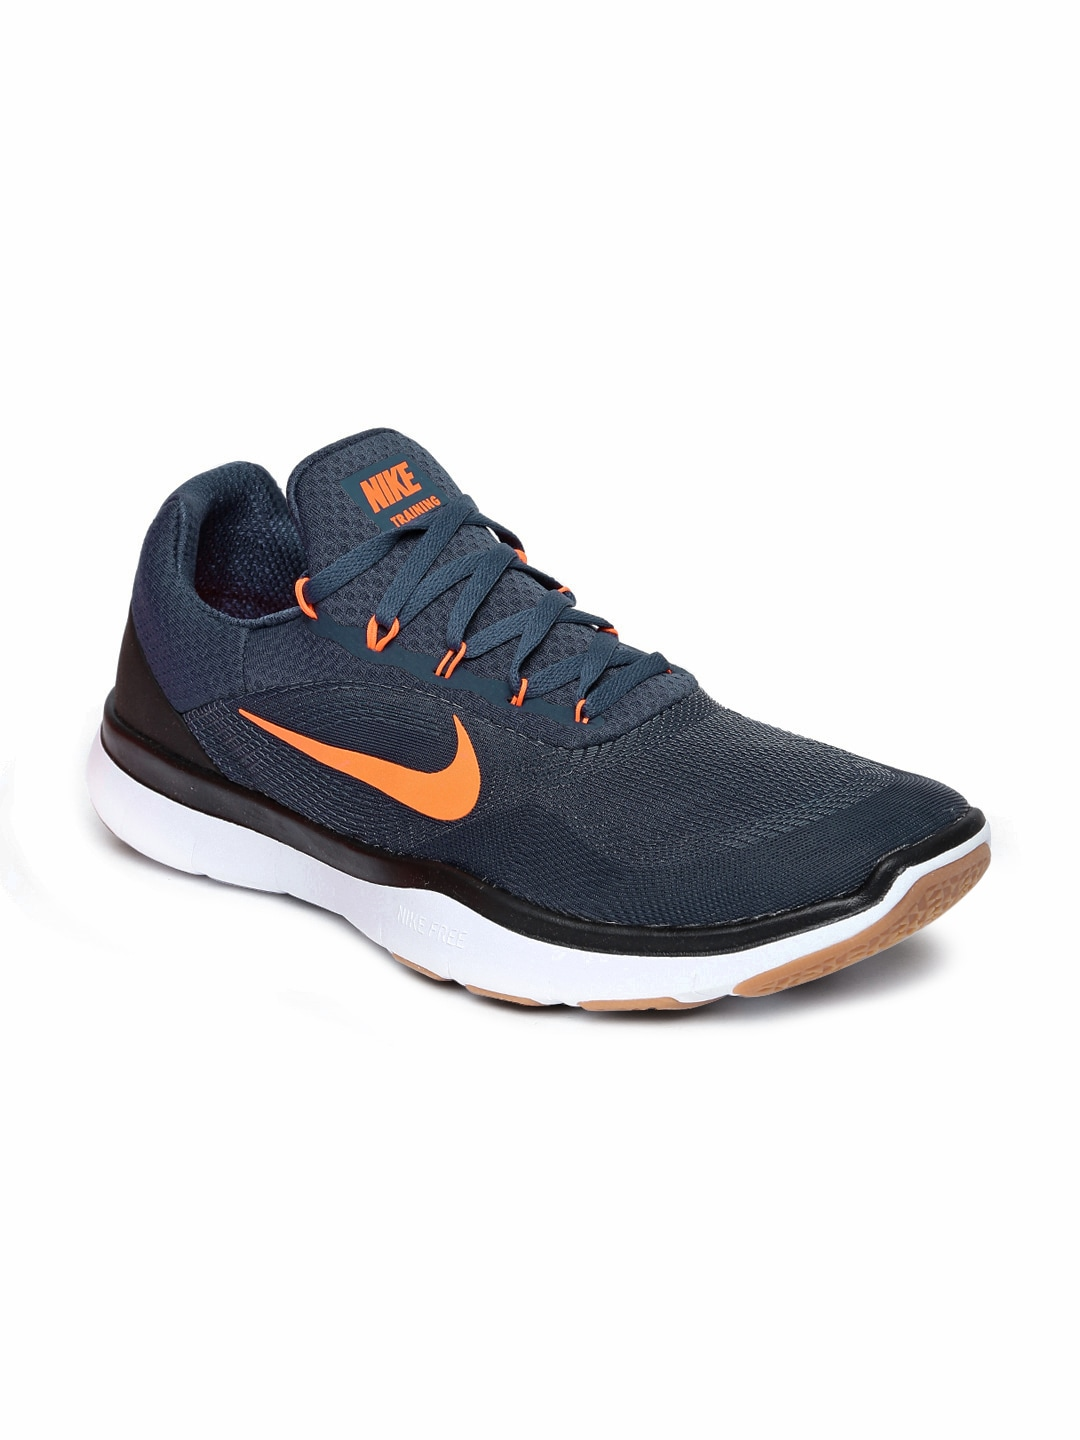 52186ed7c44e Nike - Shop for Nike Apparels Online in India